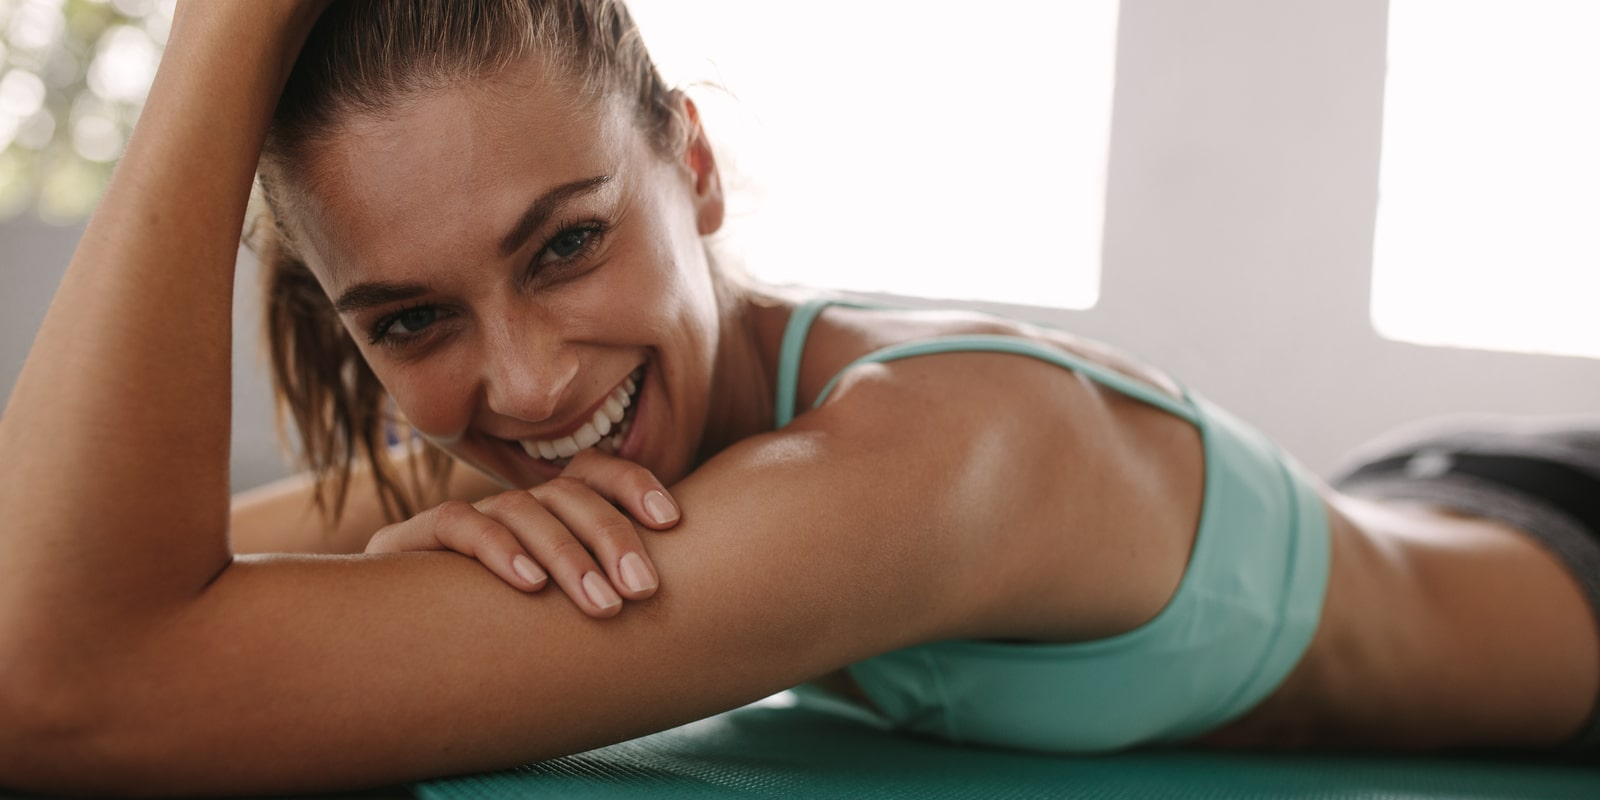 Woman smiling after her workout